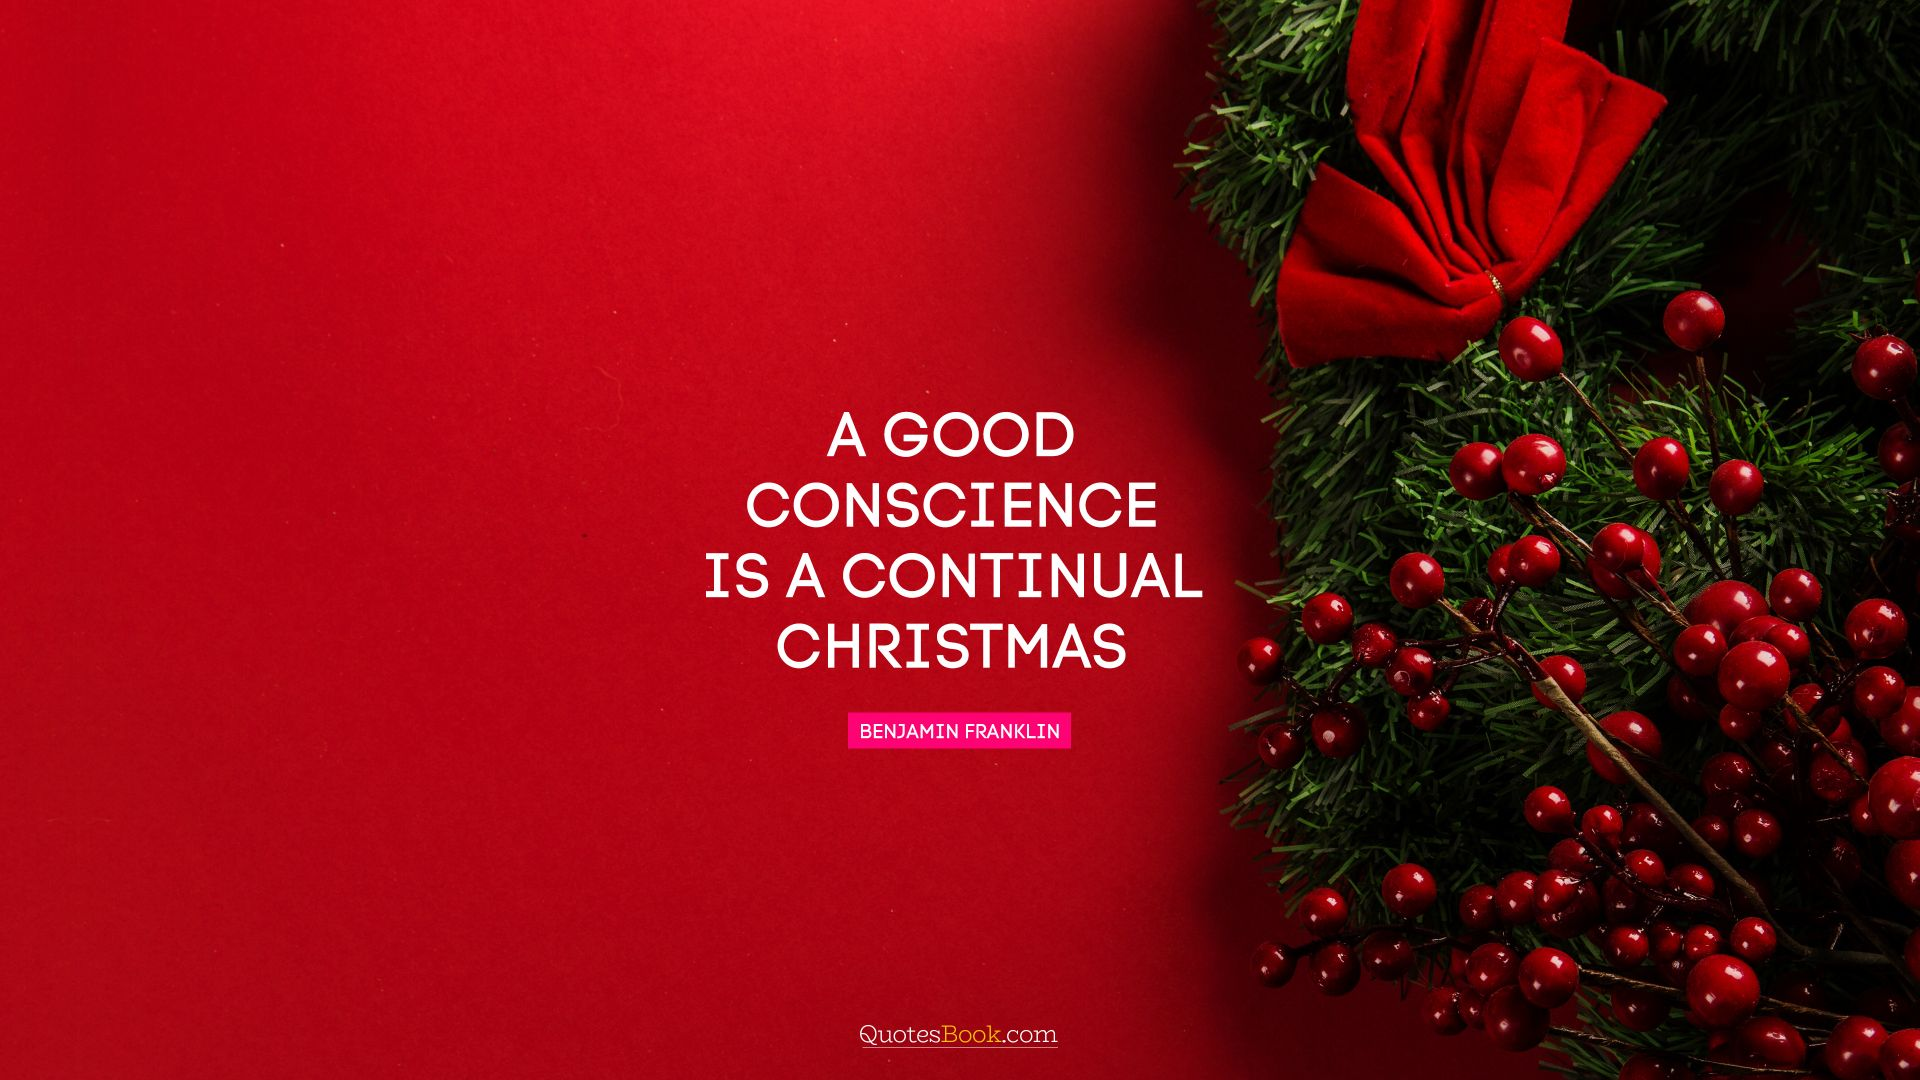 A good conscience is a continual Christmas. - Quote by Benjamin Franklin